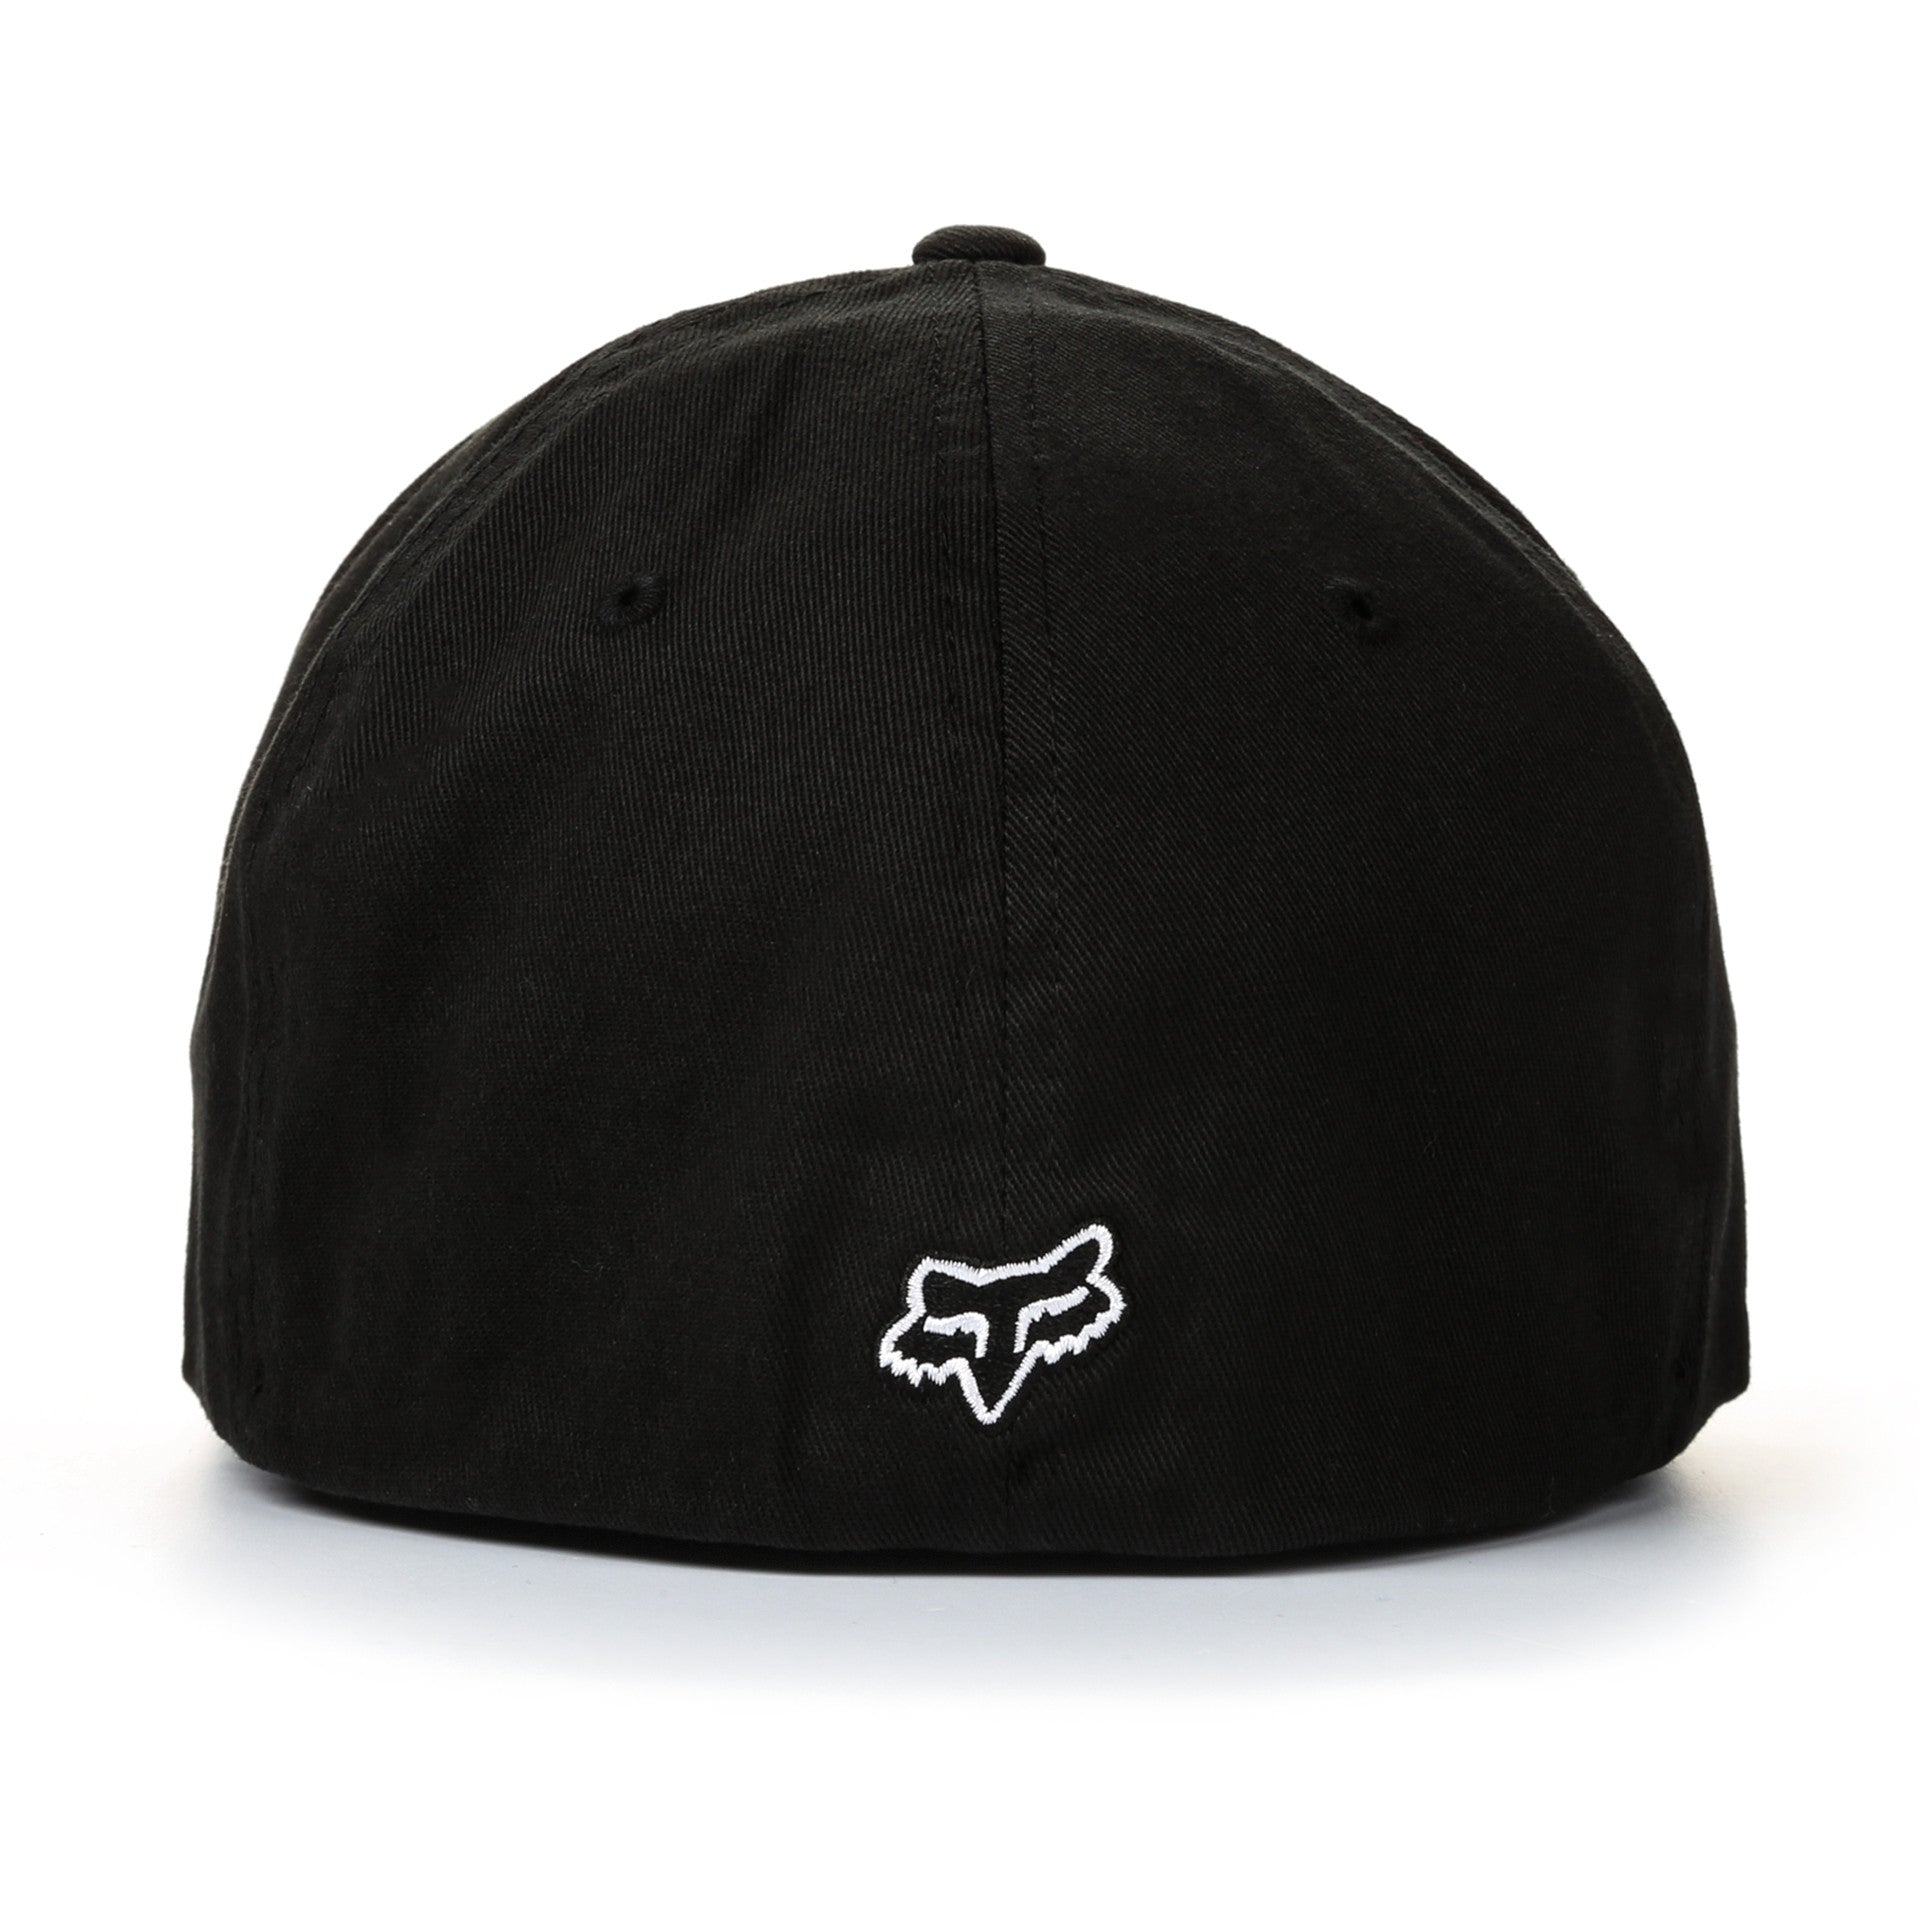 21c1fc27ed055 Fox Legacy Flex 45 Flexfit Hat - Black White - New Star